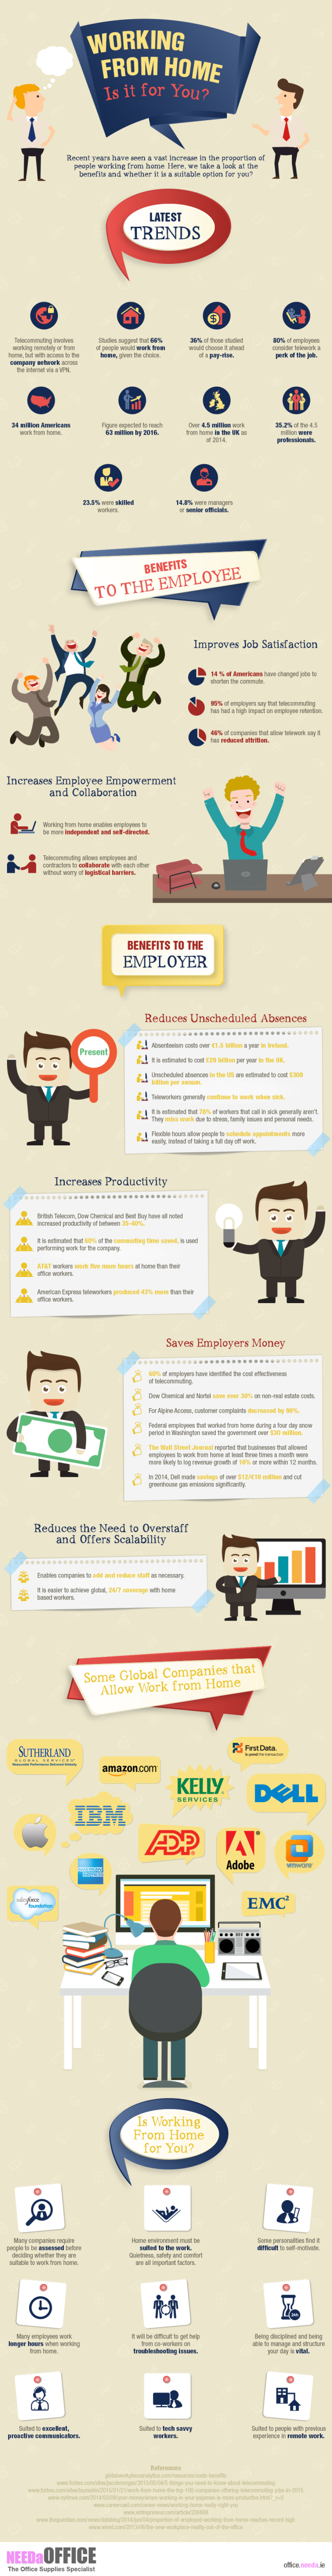 Is Working From Home For You? [Infographic]